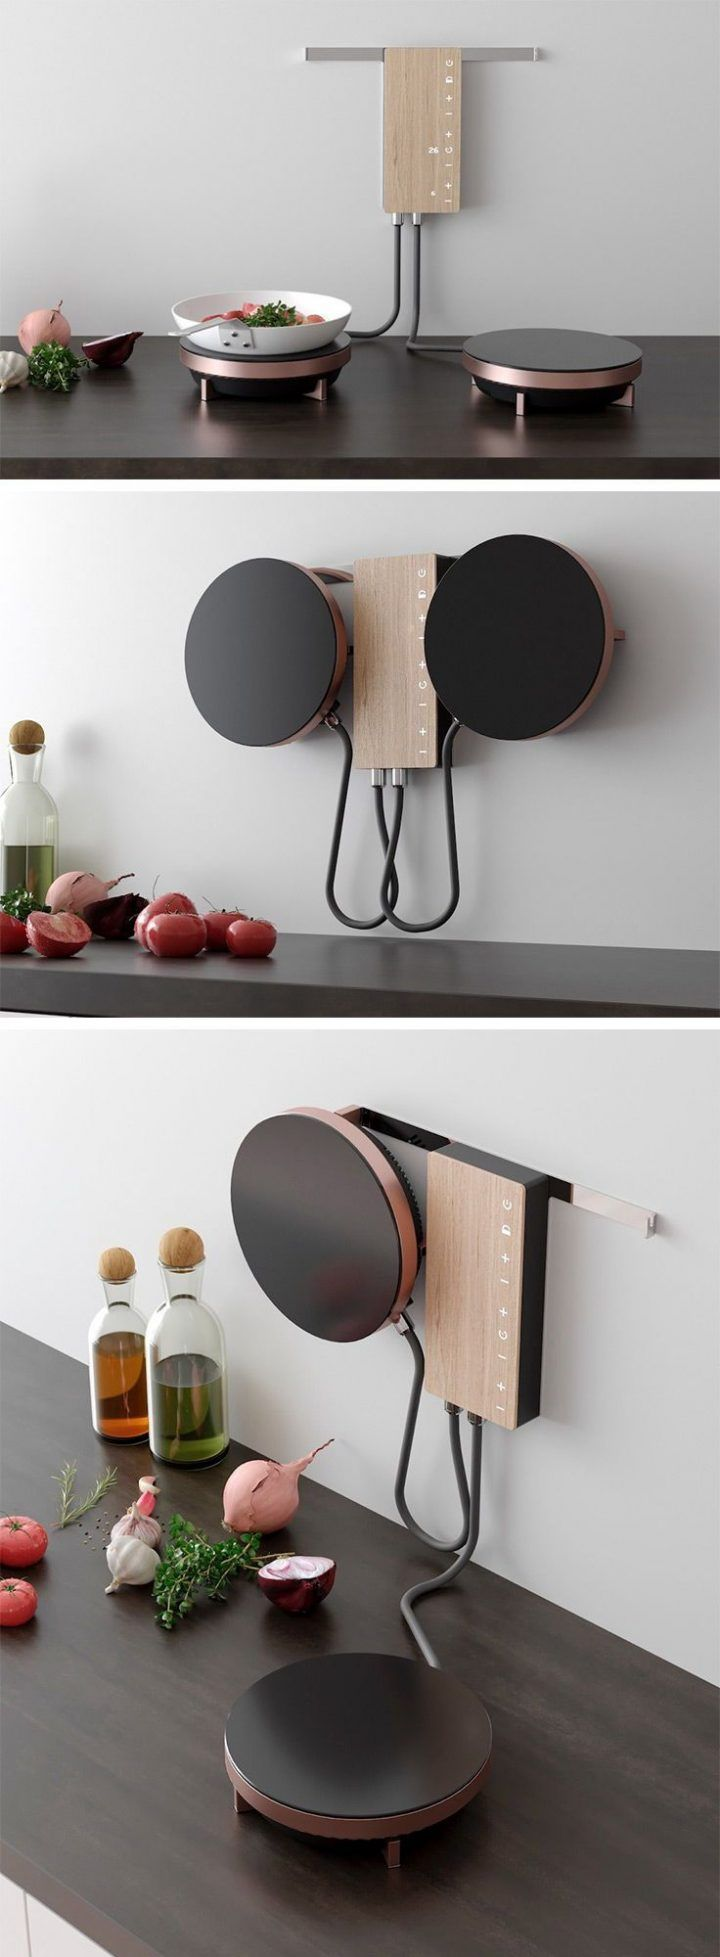 Ordine is an innovative cooking solution designed for the modern user. Optimized for small spaces, the design eliminates the need for a bulky traditional stove, clearing the way for more cabinet and counter space. The design features two hob units that are mounted on a central power hub on the wall. Elevated neatly out of the way, the user must simply grab one or both hobs off the wall and set the desired temperature to activate. – Rookie Dragon